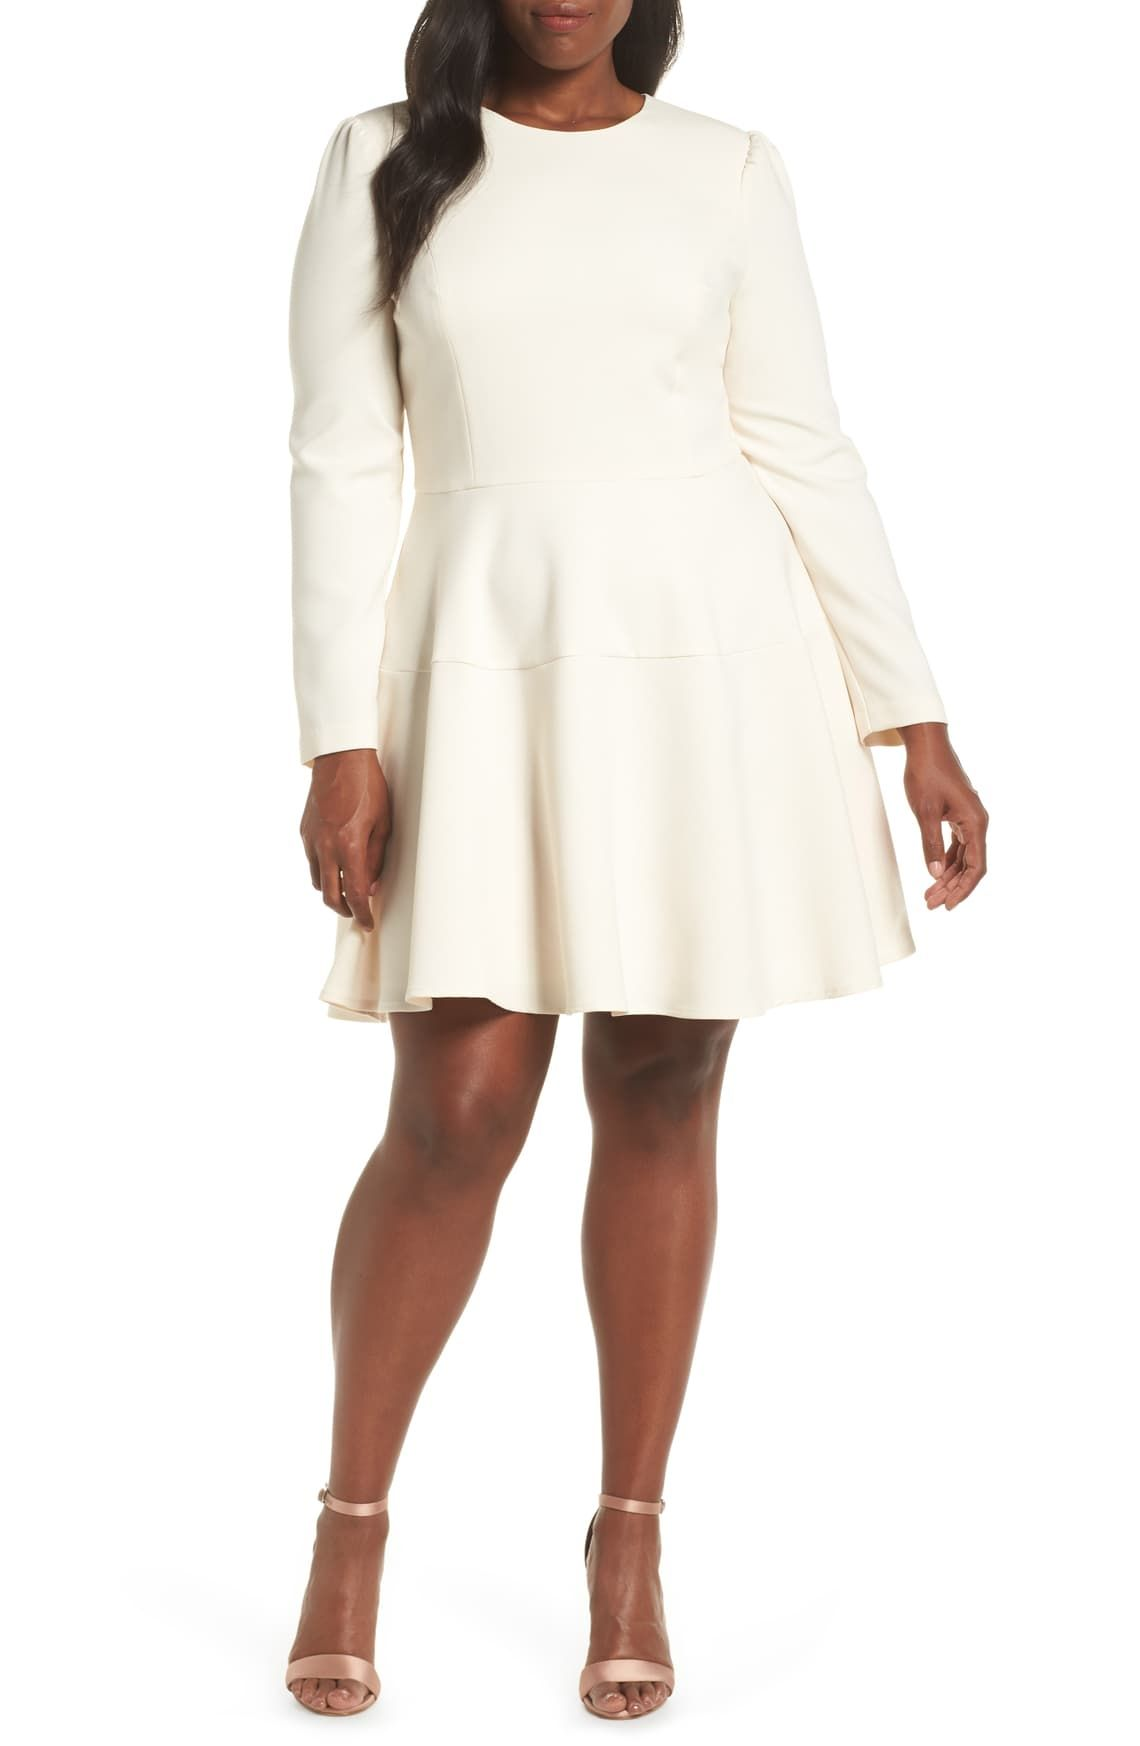 Gal Meets Glam Collection Celeste Long Sleeve Fit Flare Dress Nordstrom Fit And Flare Cocktail Dress Fit Flare Dress Flare Dress [ 1746 x 1140 Pixel ]